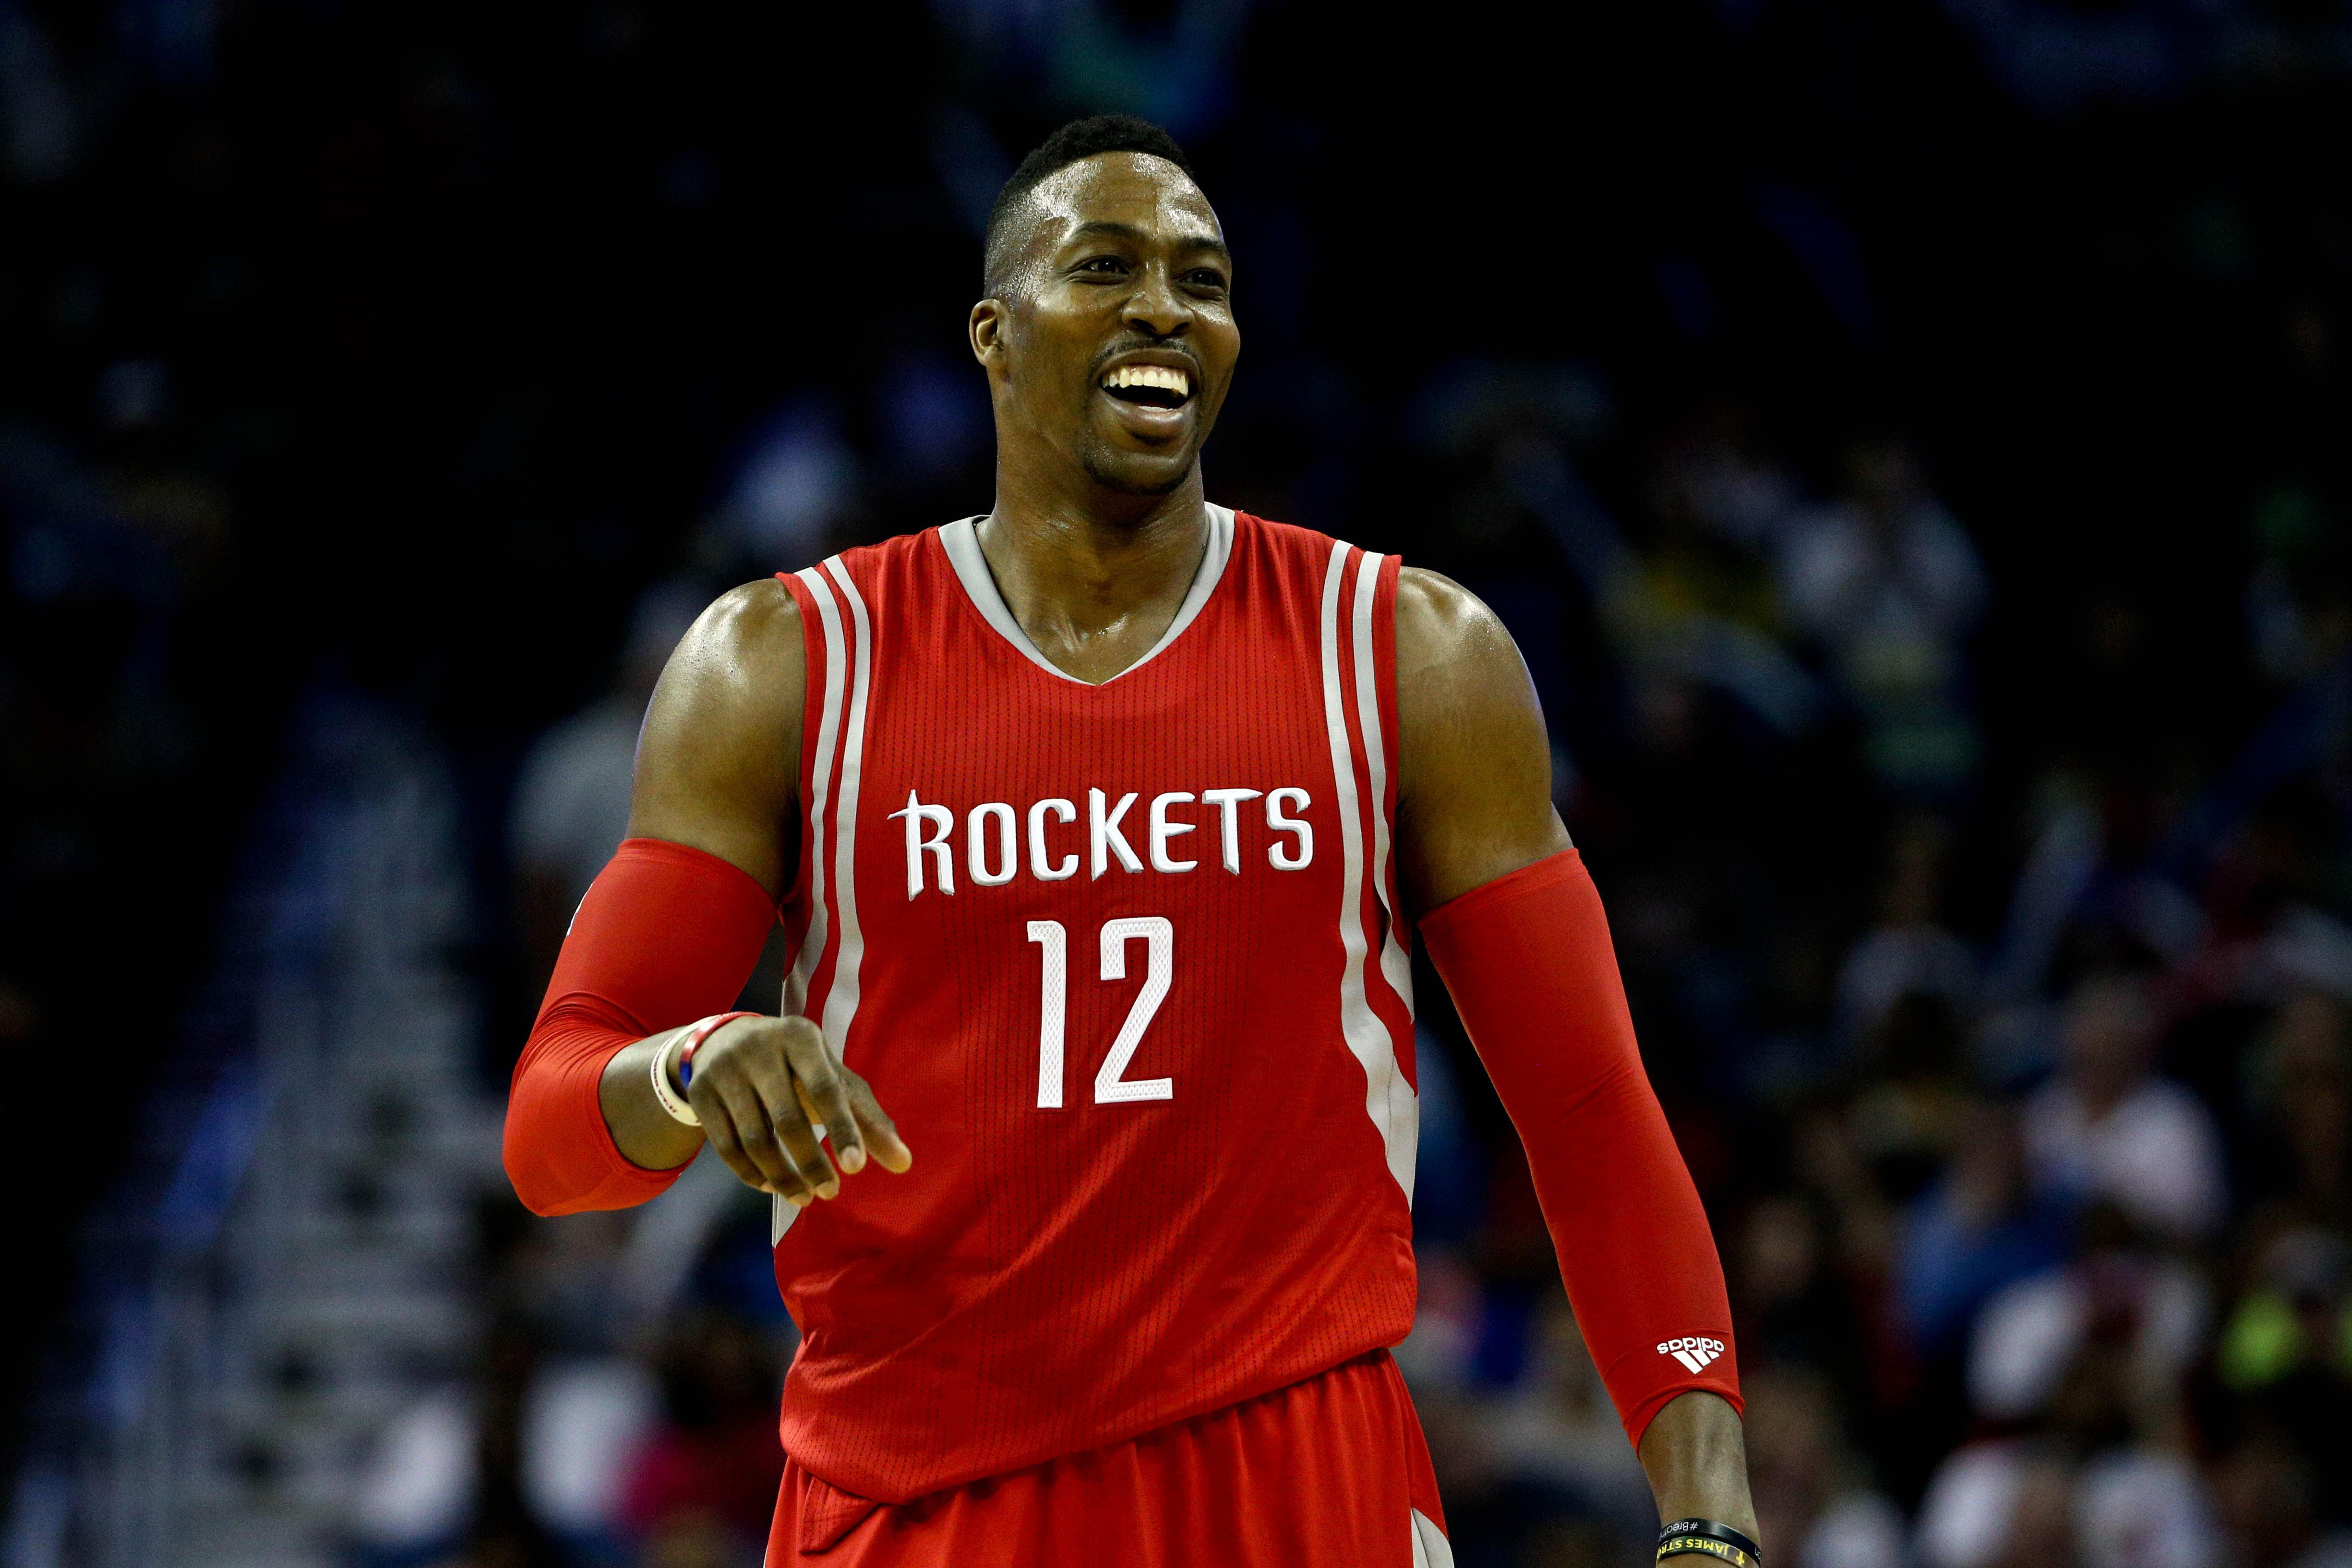 Rockets outlast Pelicans in Dwight Howard's slight return to action